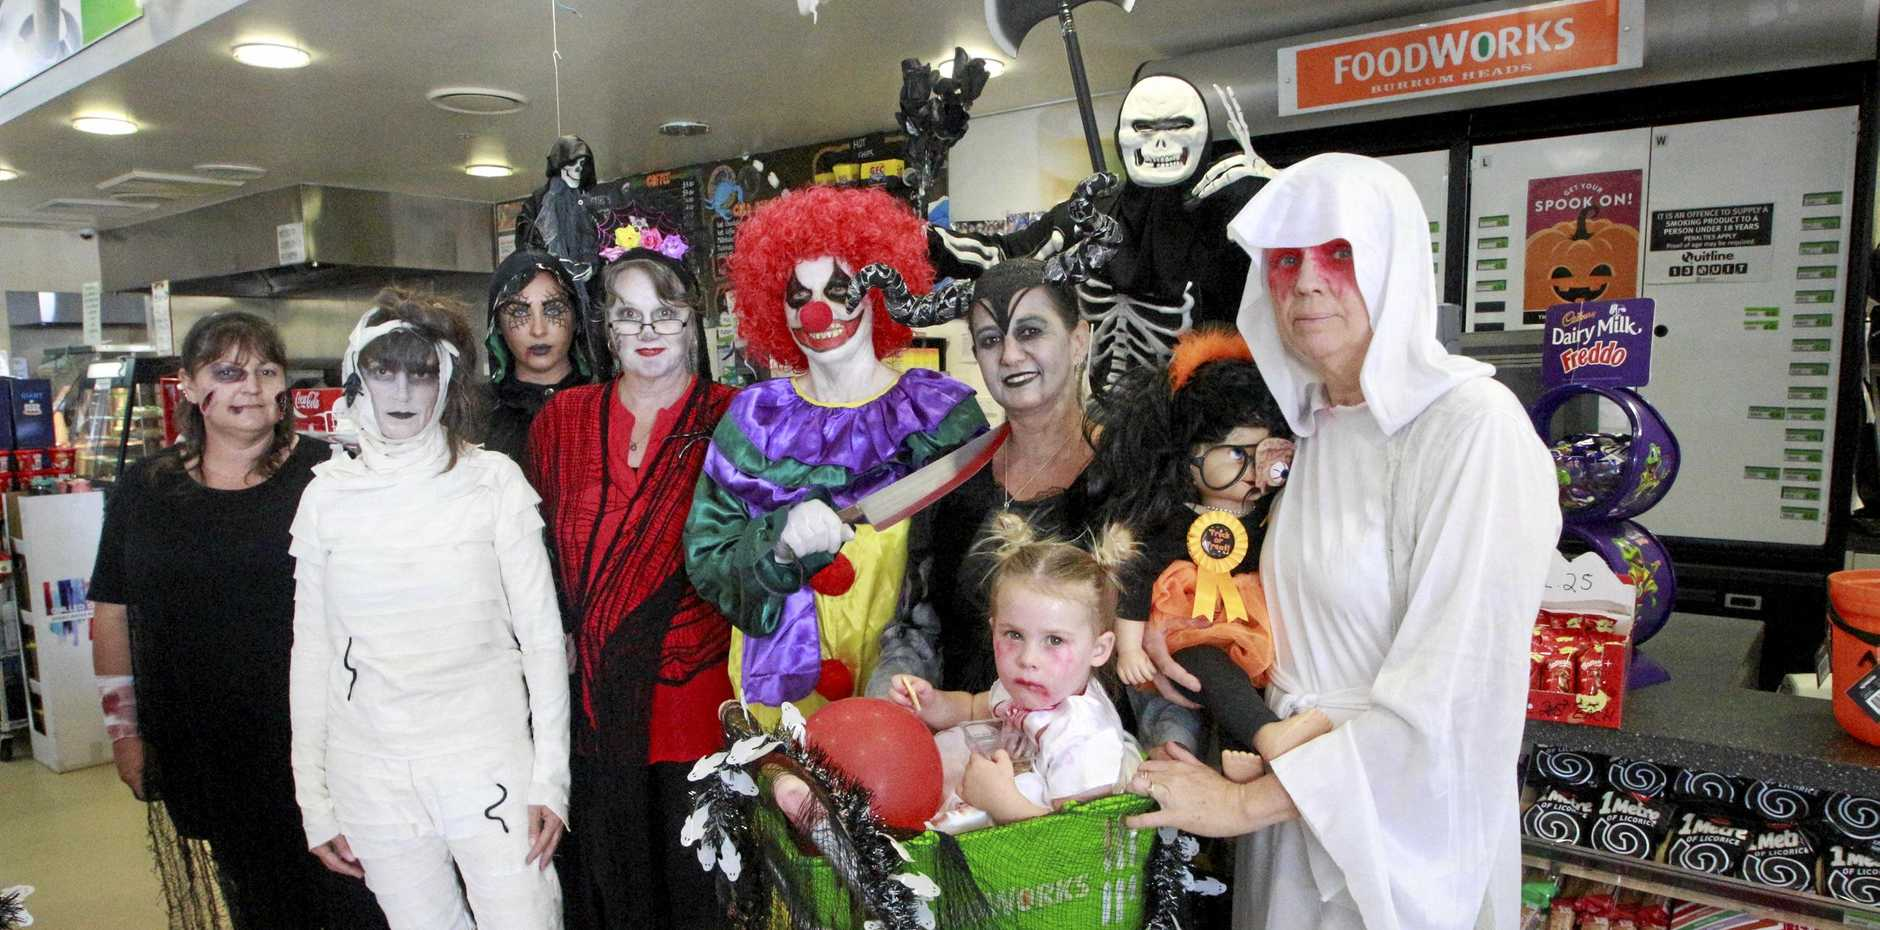 HAVING FUN: Foodworks Burrum Heads and Post Office staff Jo Smith, Heather Attwell, Brooke Guest, Deb Humphrey, Sue Donohoe, Nicole Maher, Zaidy Guest, Susan Vaughan and Shane Vaughan (background) were having some Halloween fun with customers.